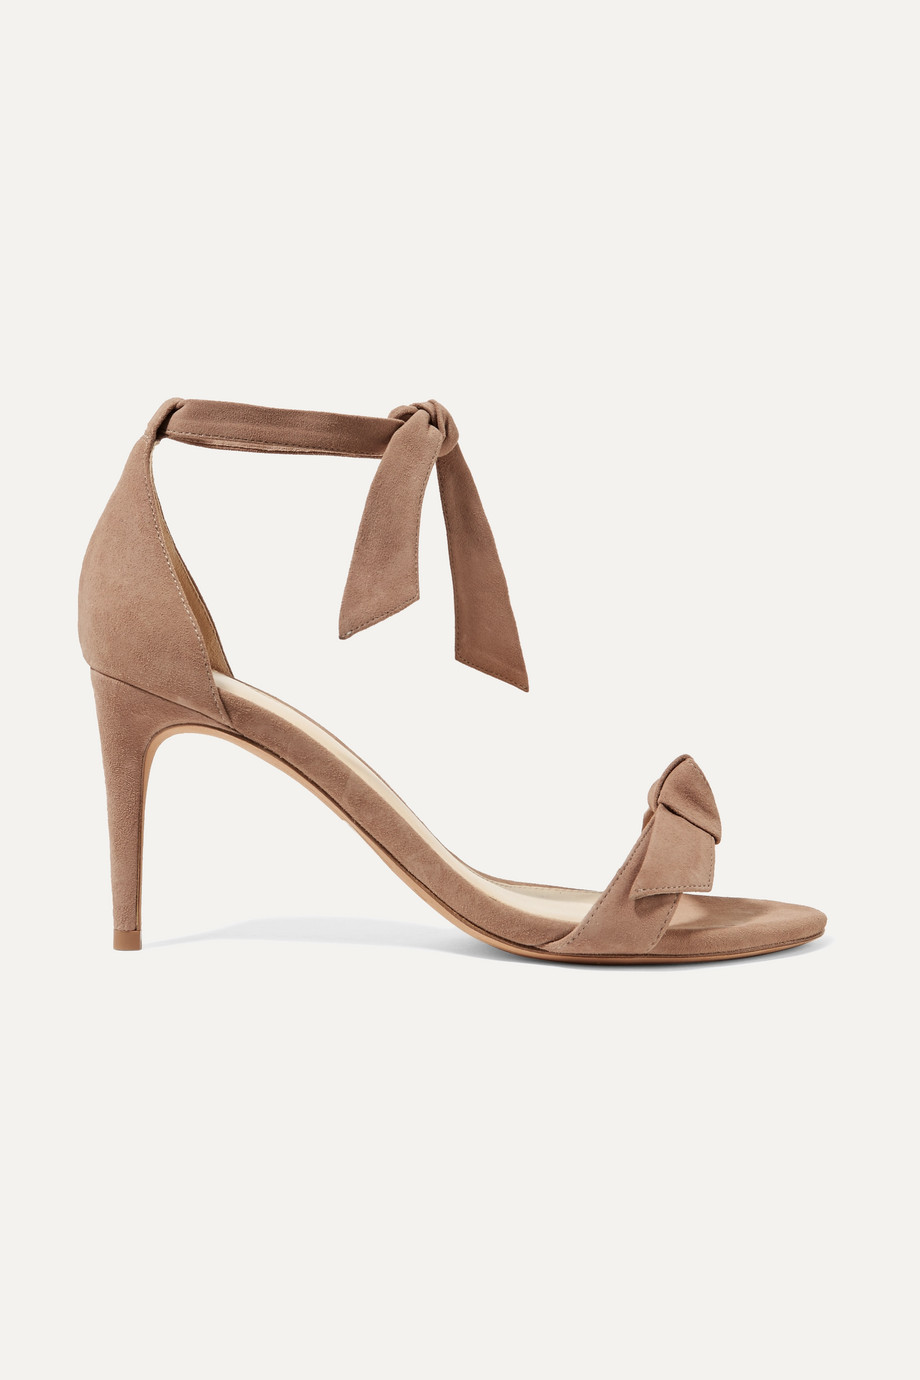 Alexandre Birman Clarita bow-embellished suede sandals